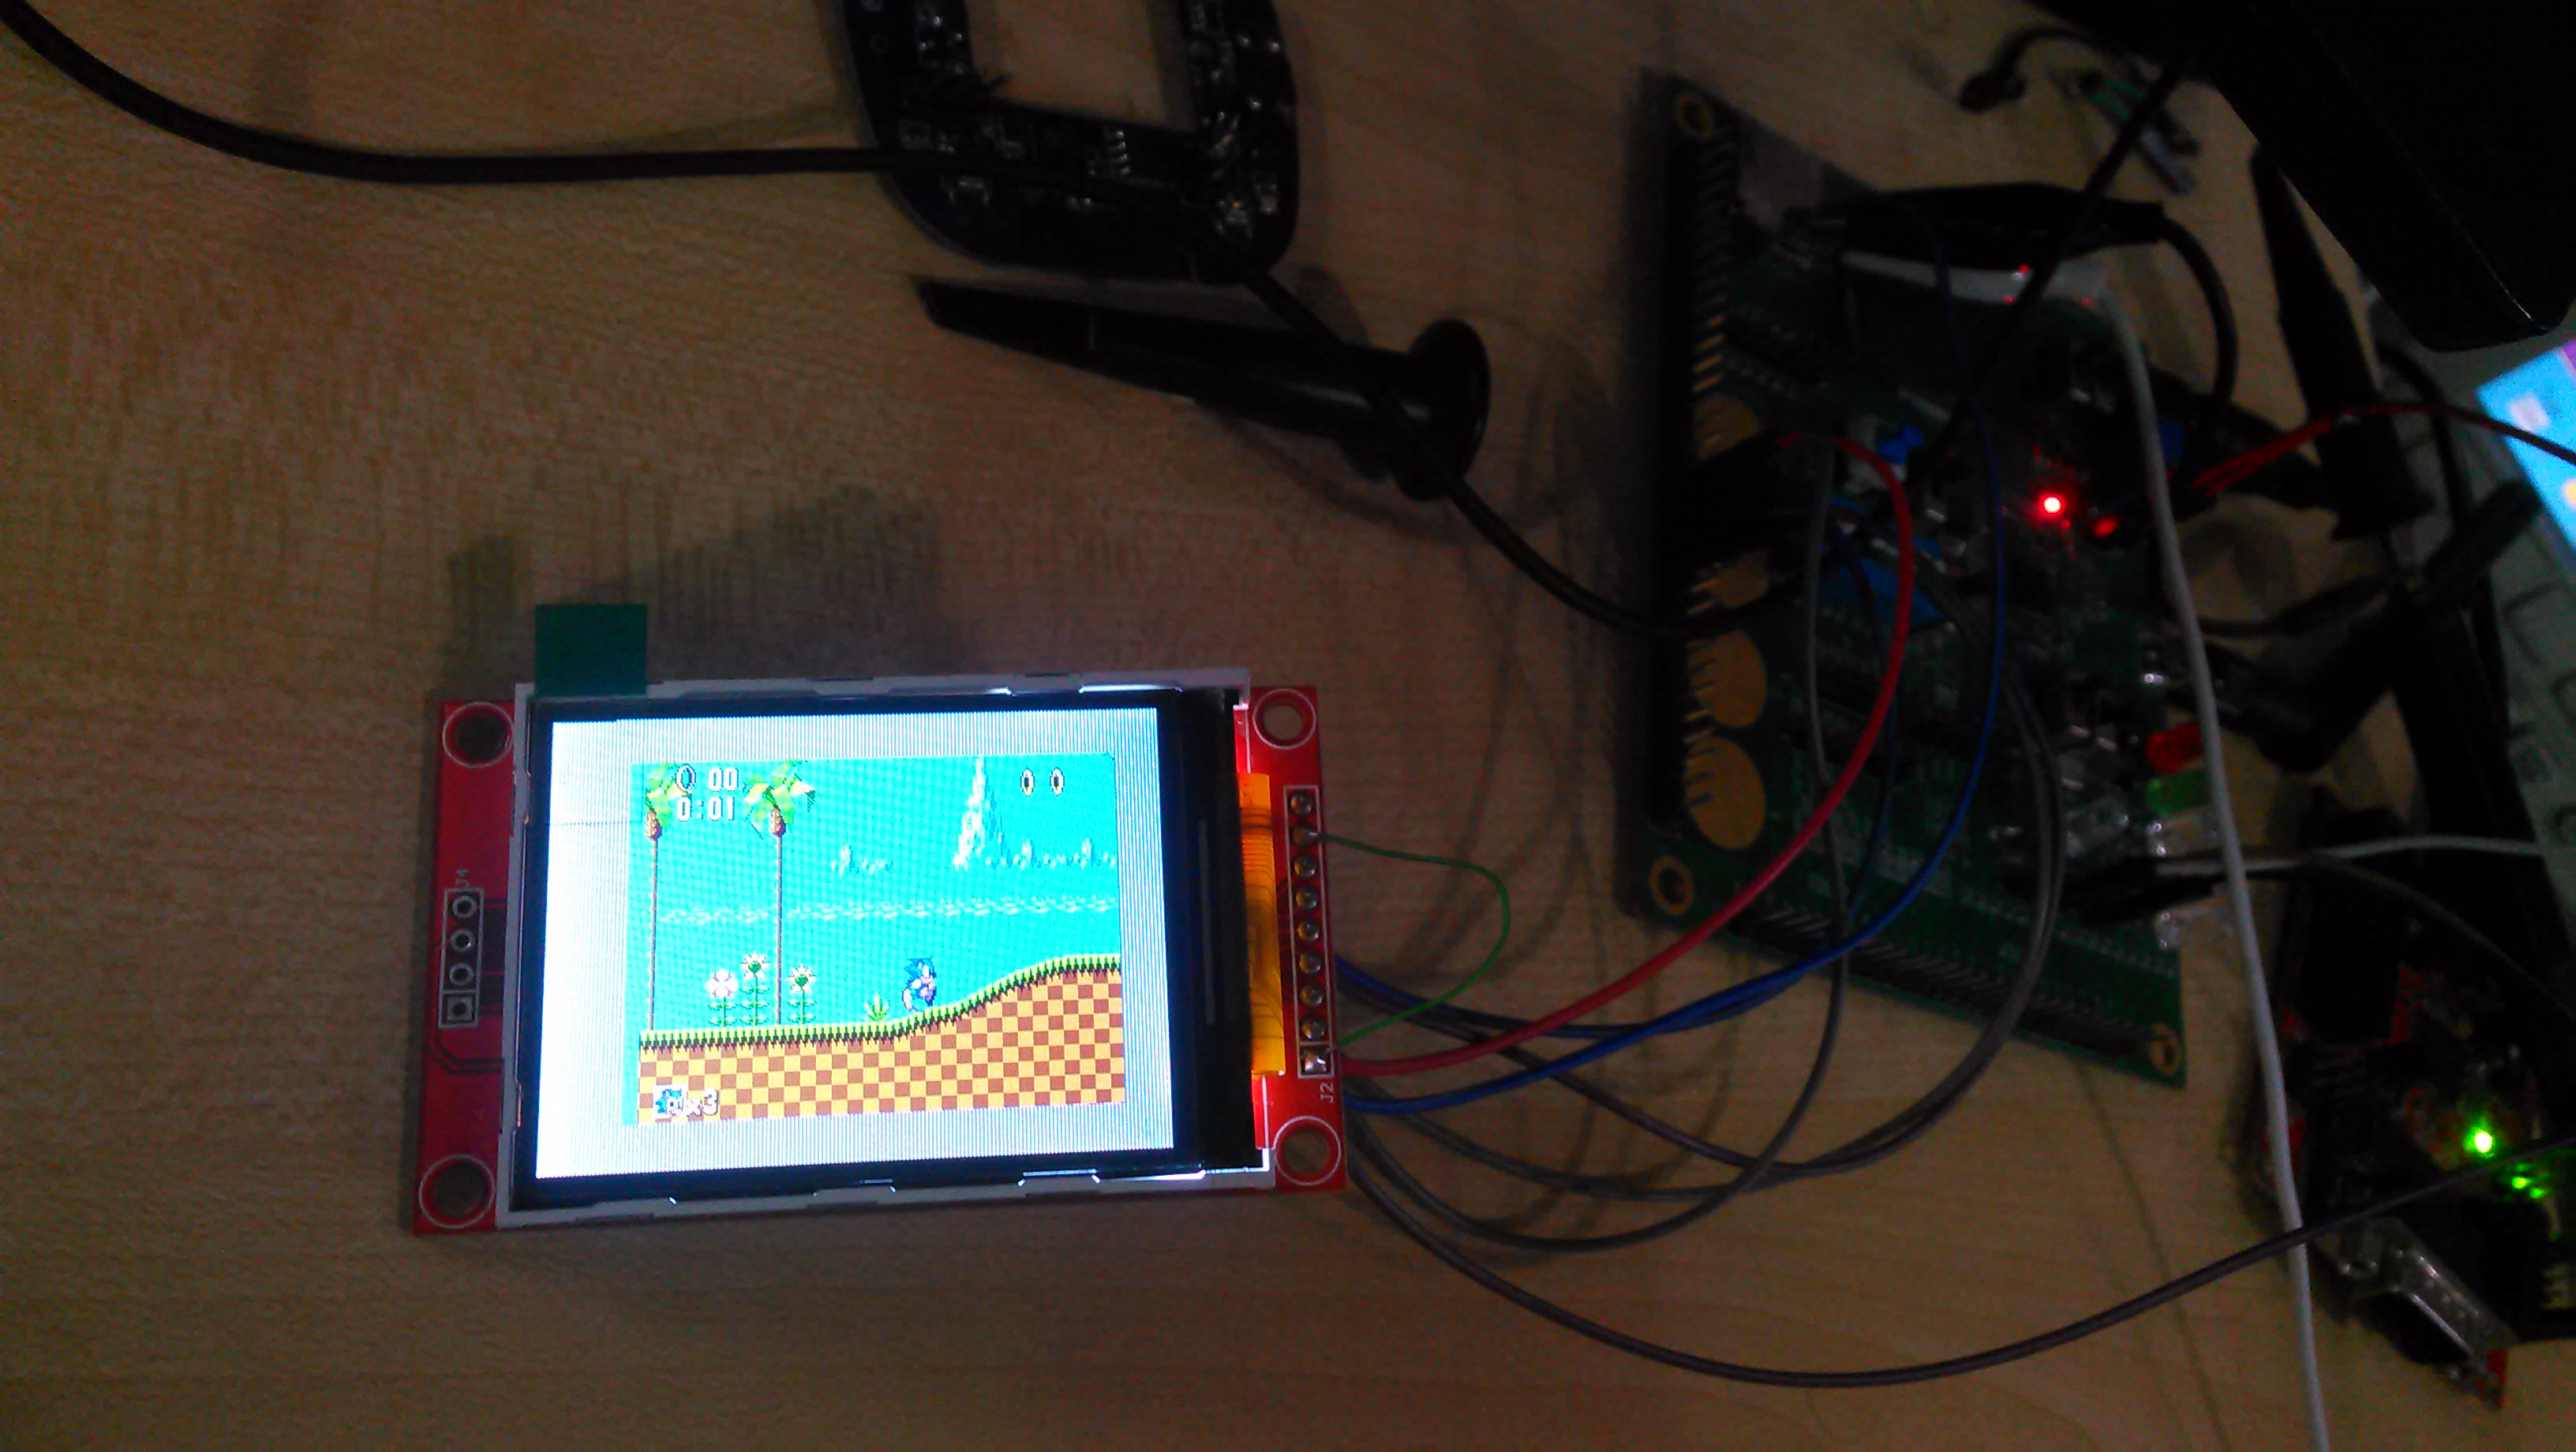 Do you think we are playing games here? - ESP32 Forum